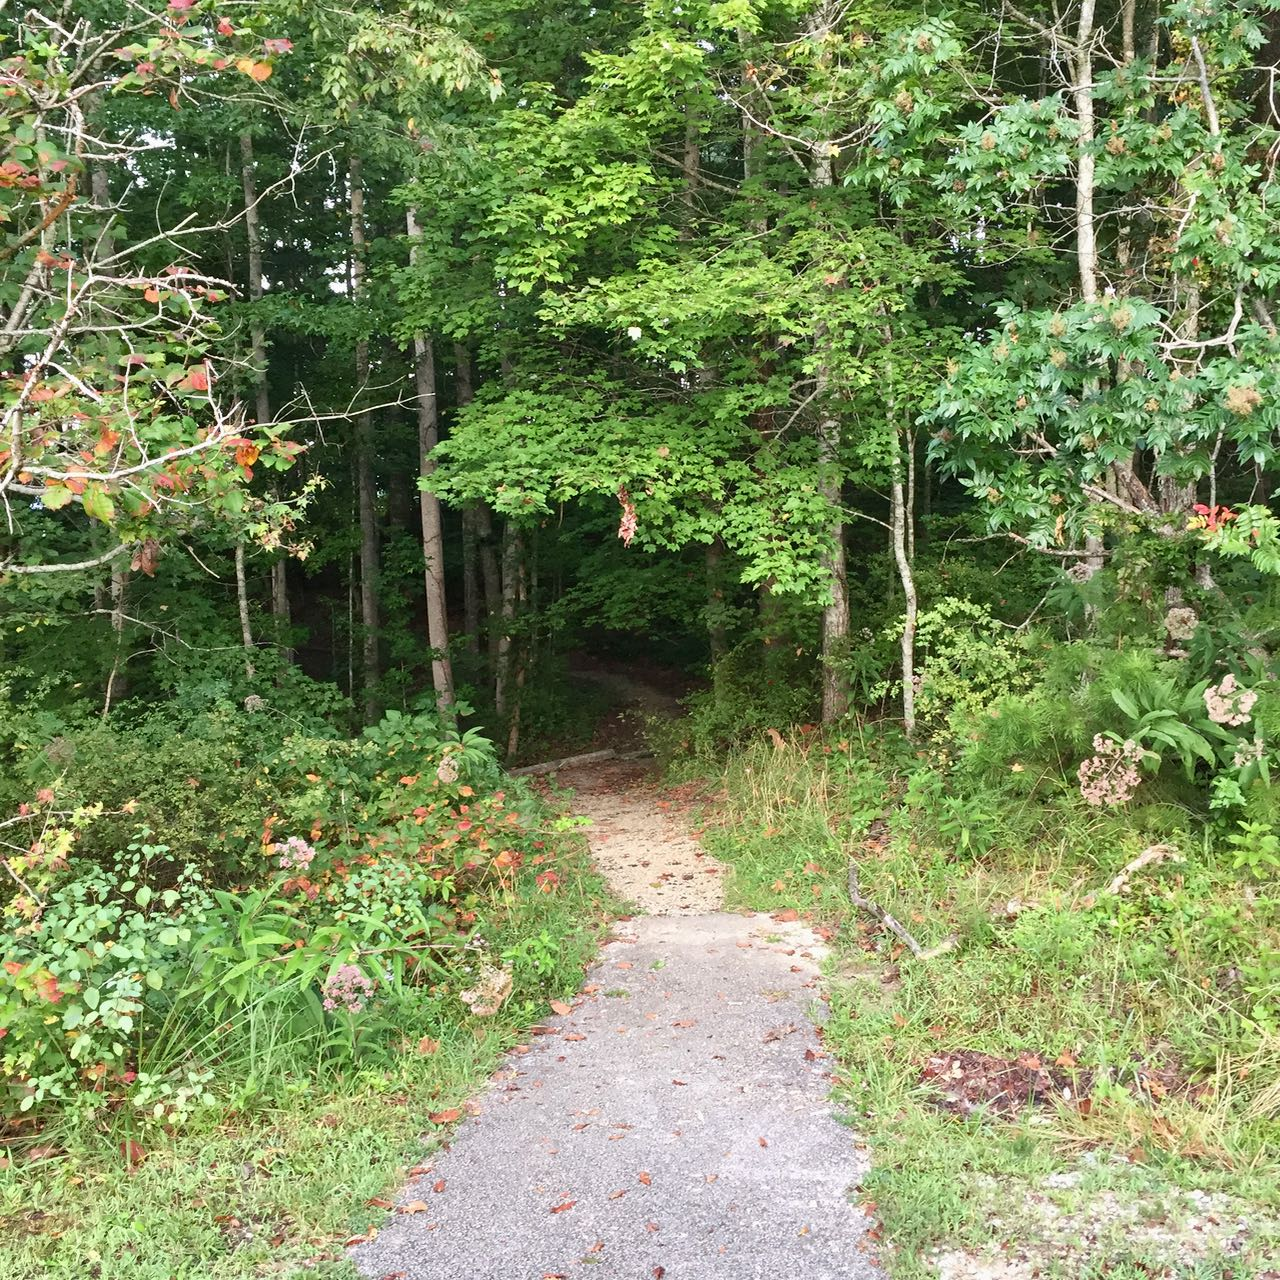 An image of the trail from the parking area that leads to Windy Bay Fishing Point at Cave Run Lake in Morehead, Kentucky.